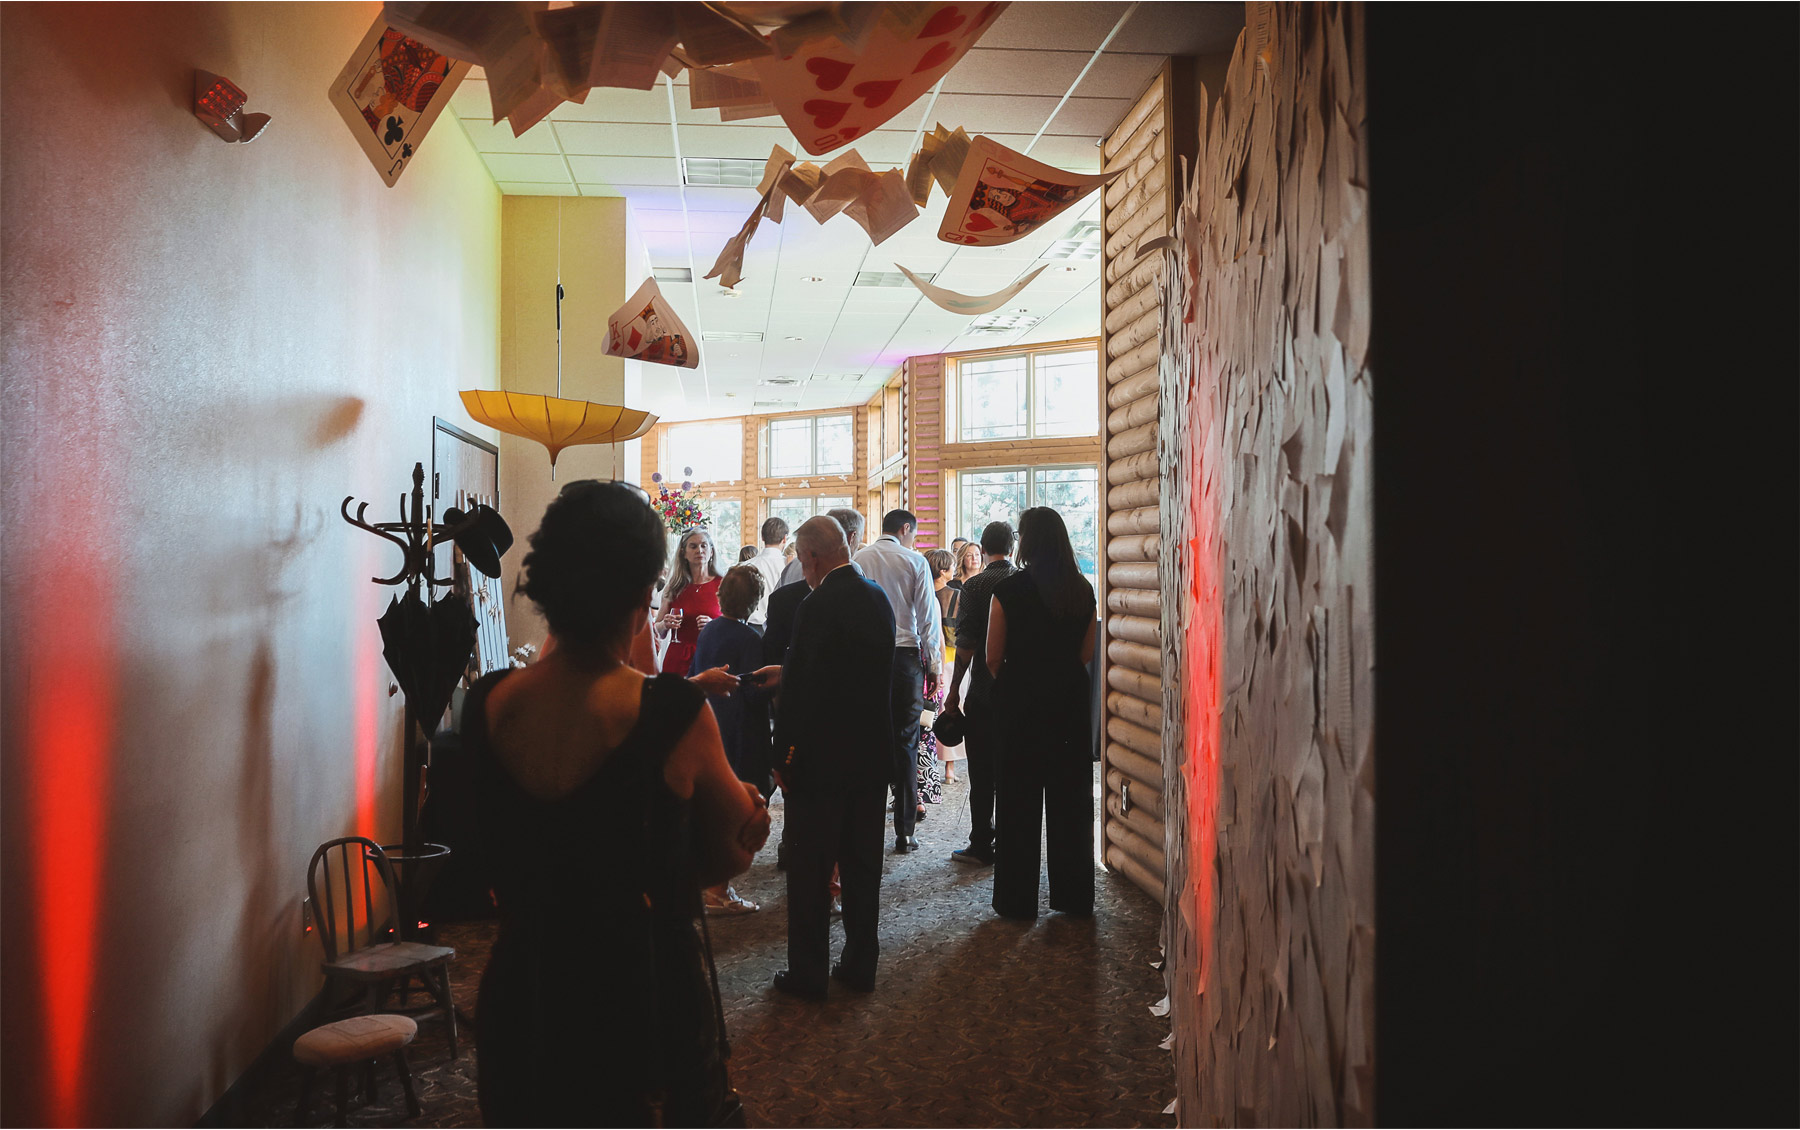 20-Vick-Photography-Wedding-Ottertail-Minnesota-Alice-in-Wonderland-Theme-Reception-Book-Pages-Playing-Cards-Tess-and-Greg.jpg